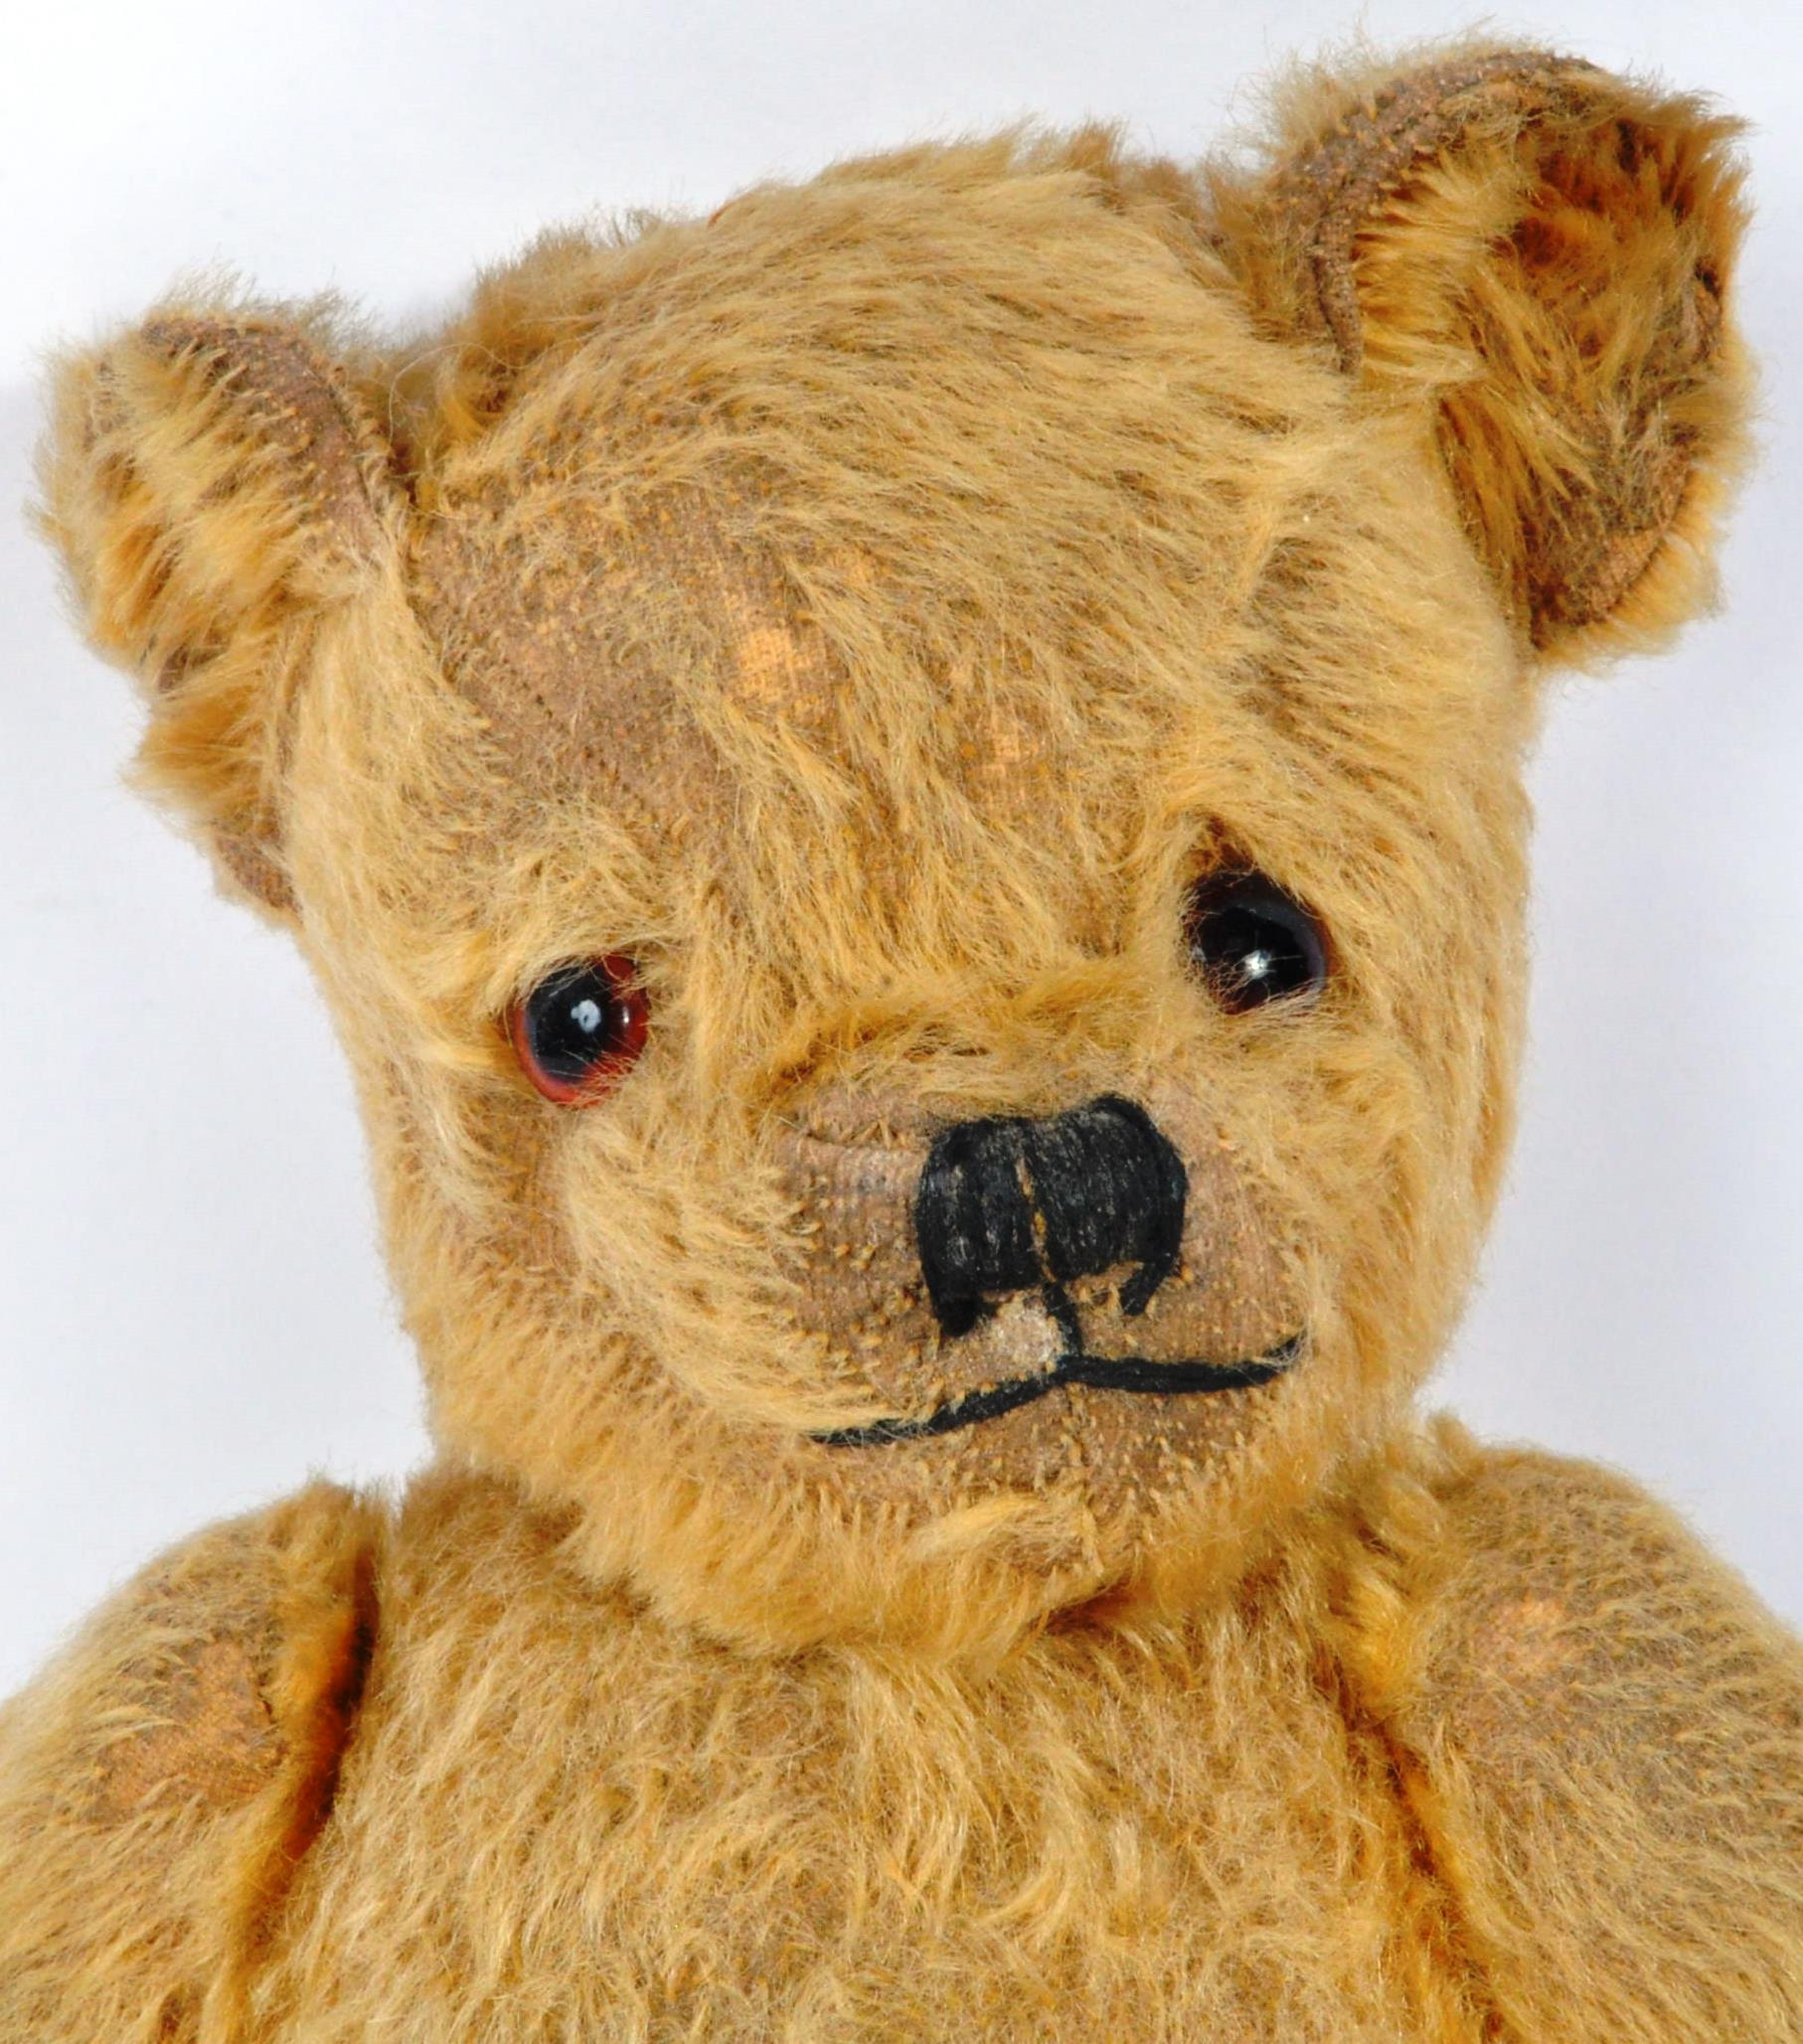 VINTAGE ENGLISH TEDDY BEAR AND GERMAN SCHUCO DOLL - Image 3 of 8